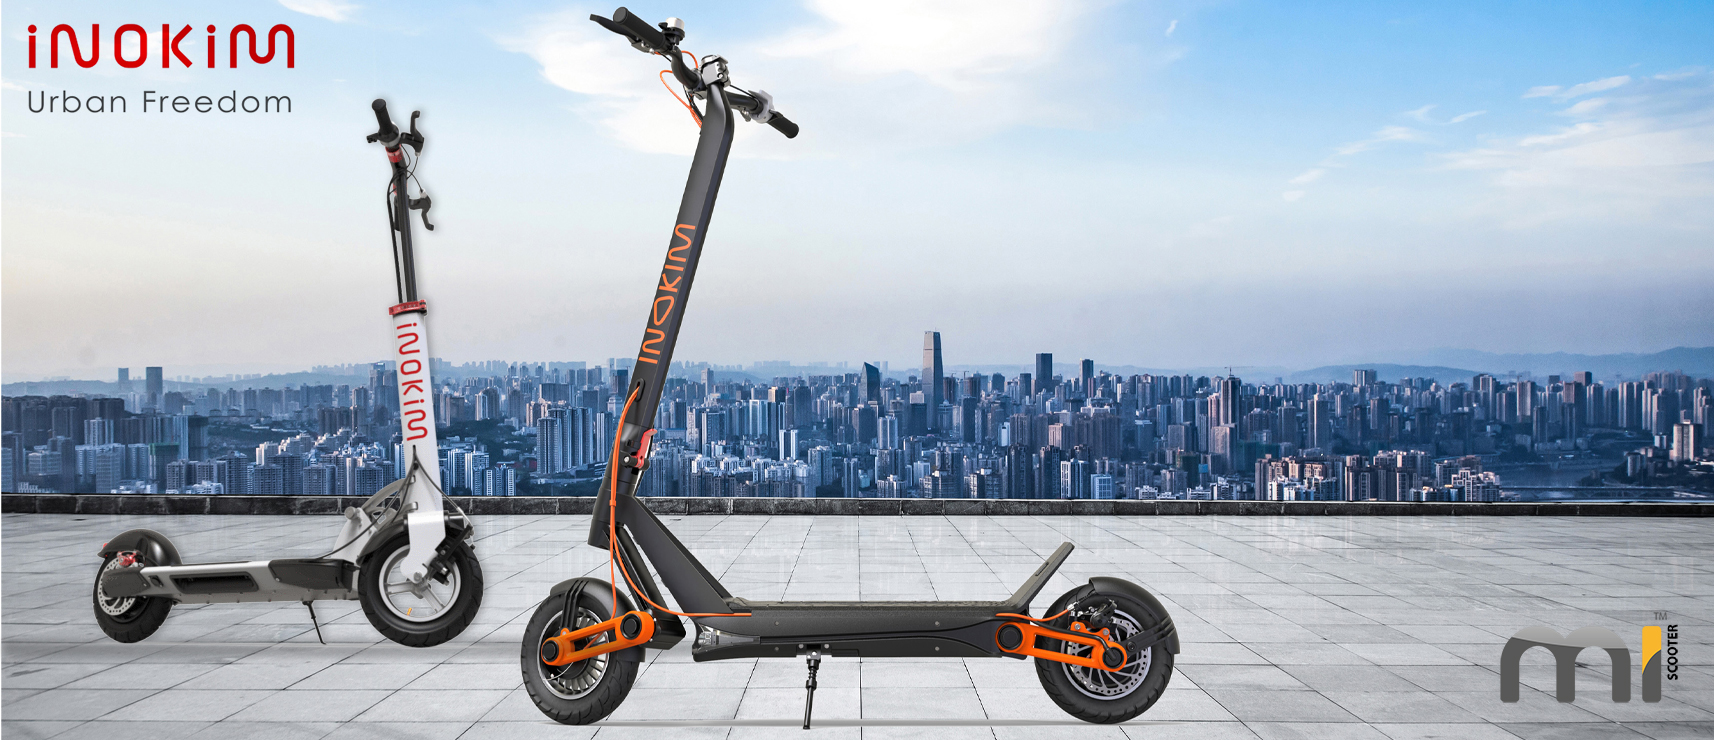 Inokim OXO Advanced Electric Scooters - Mi Scooter UK - East Midlands - Authorised UK Sales